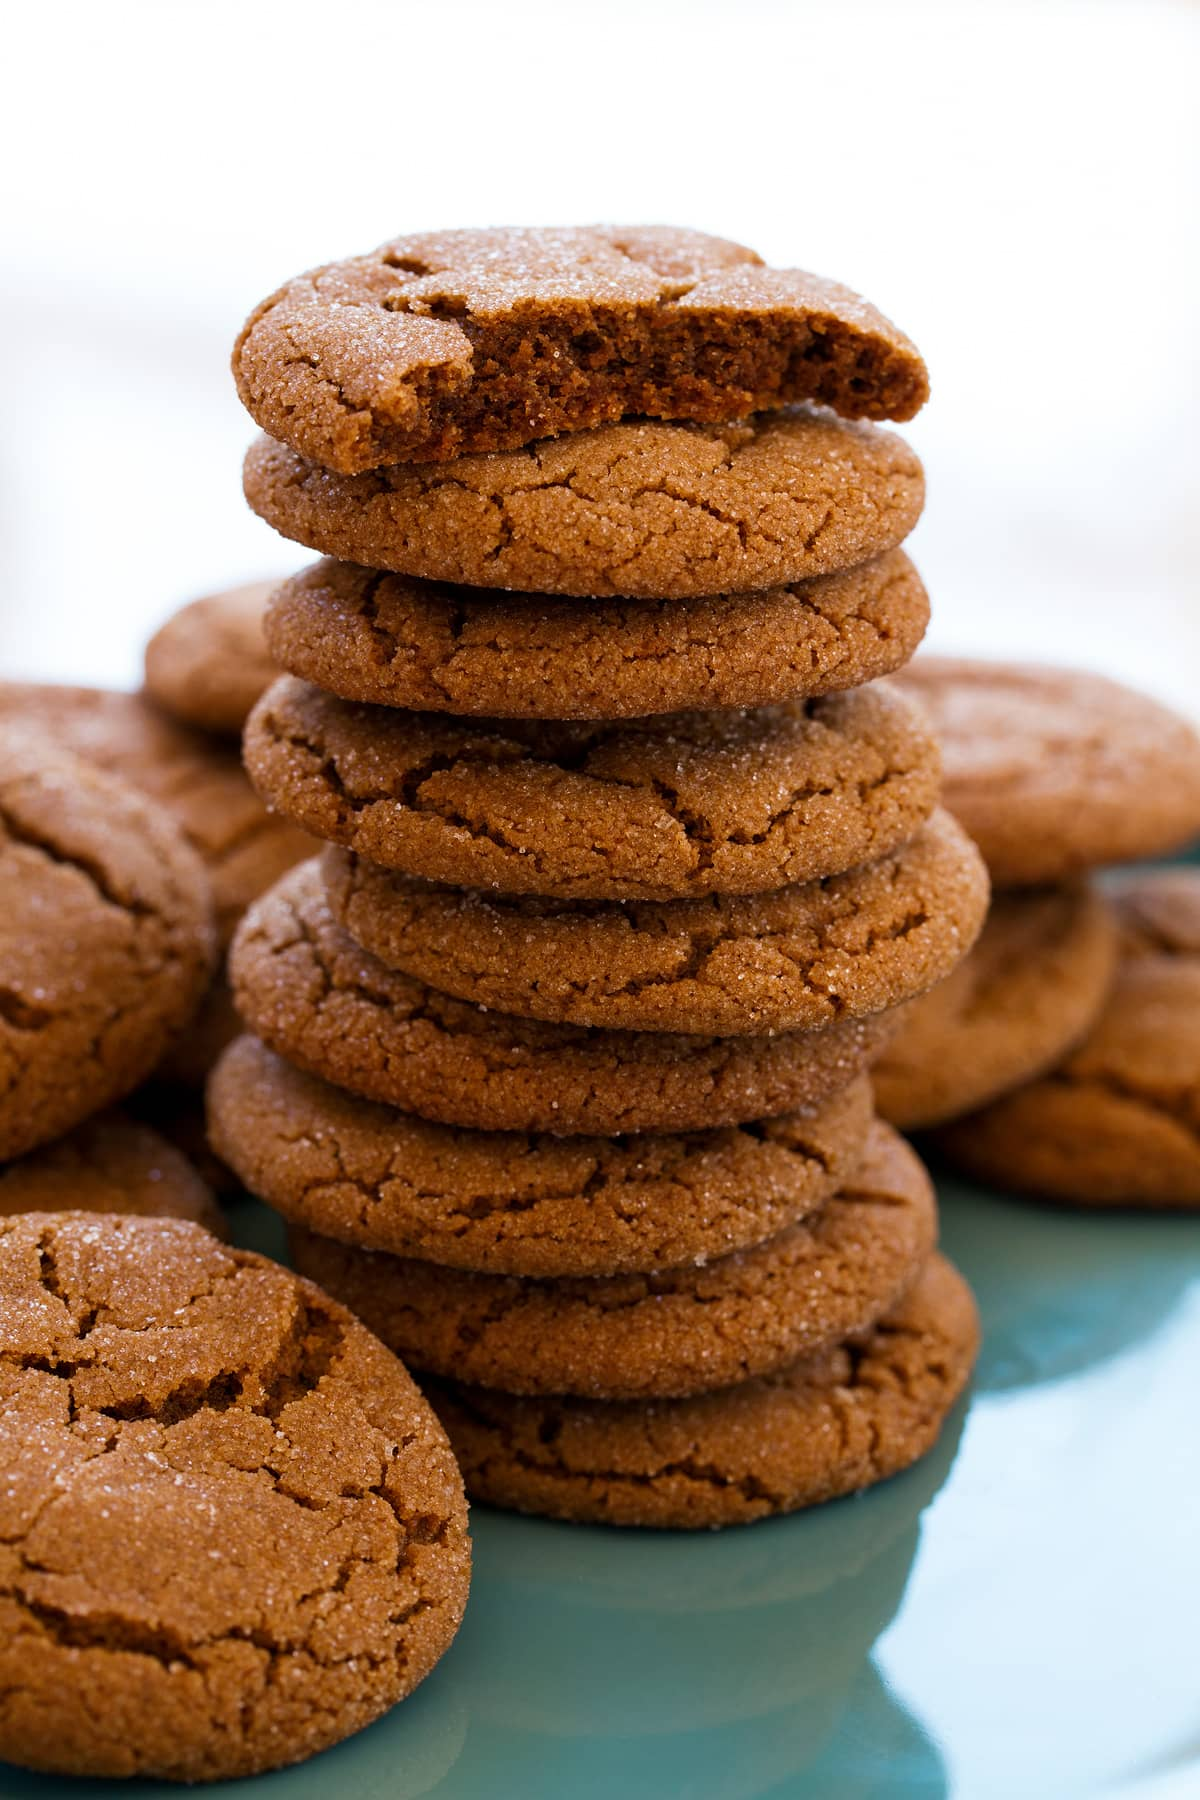 Tall stack of molasses cookies with the top cookie broken in half to show soft moist texture of interior.